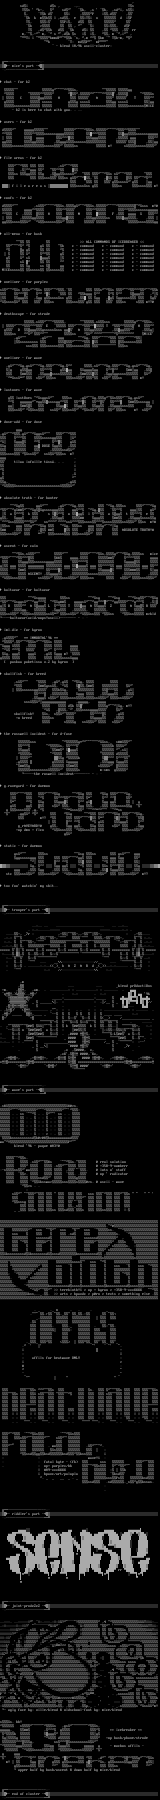 ascii logocluster 10/96 by multiple artists